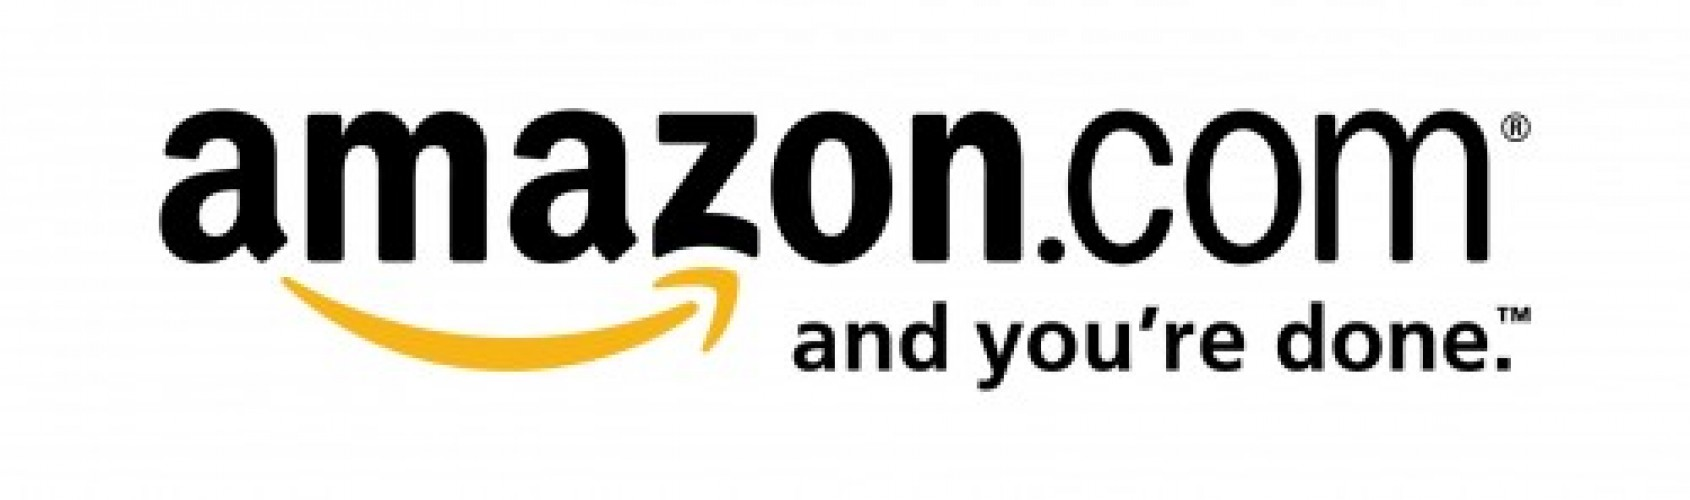 18 Tips to Take Your Amazon Shopping Sales to the Next Level